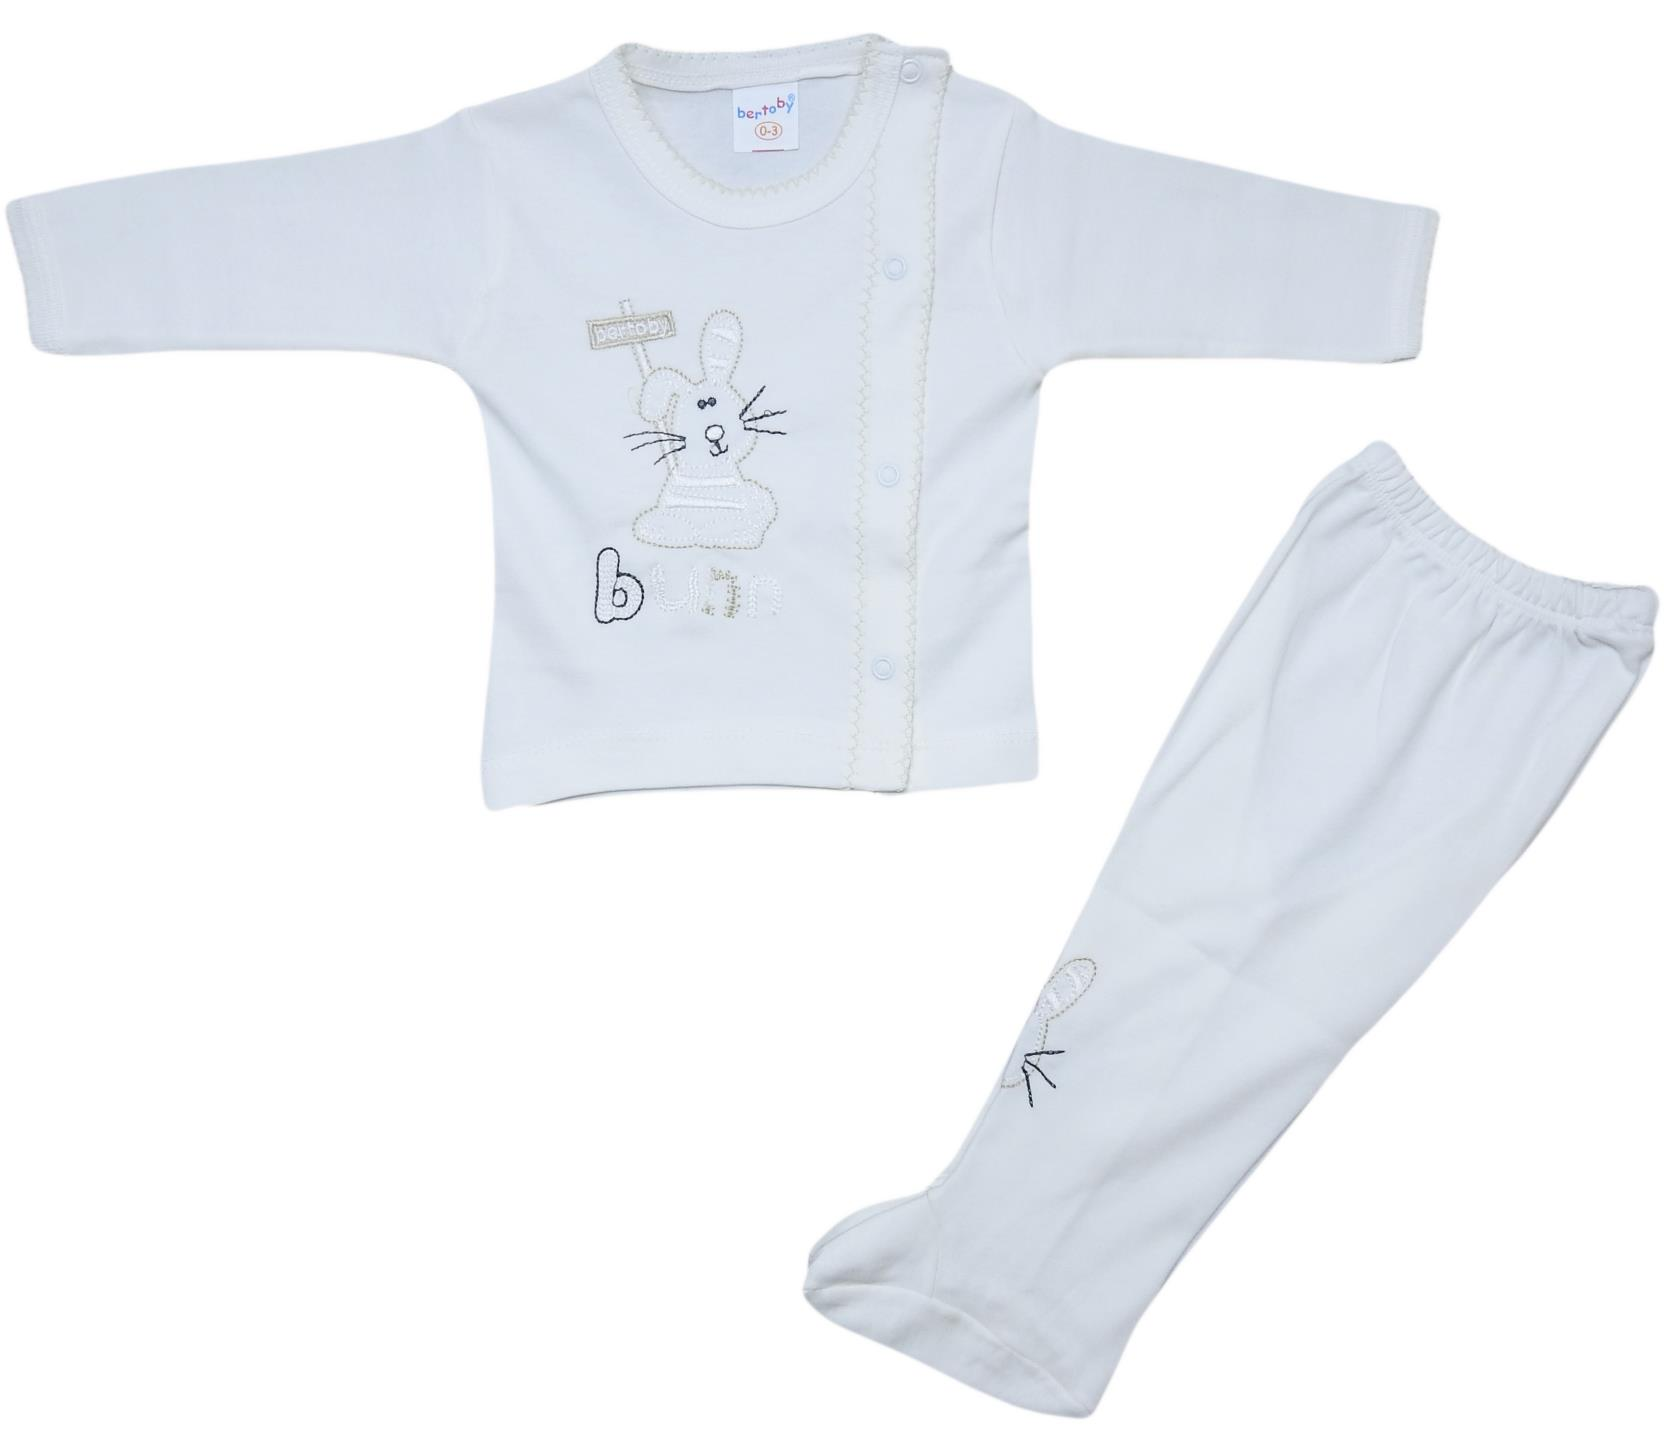 BERTO-016 wholesale baby sets-deuces for newborns for 0-3 months